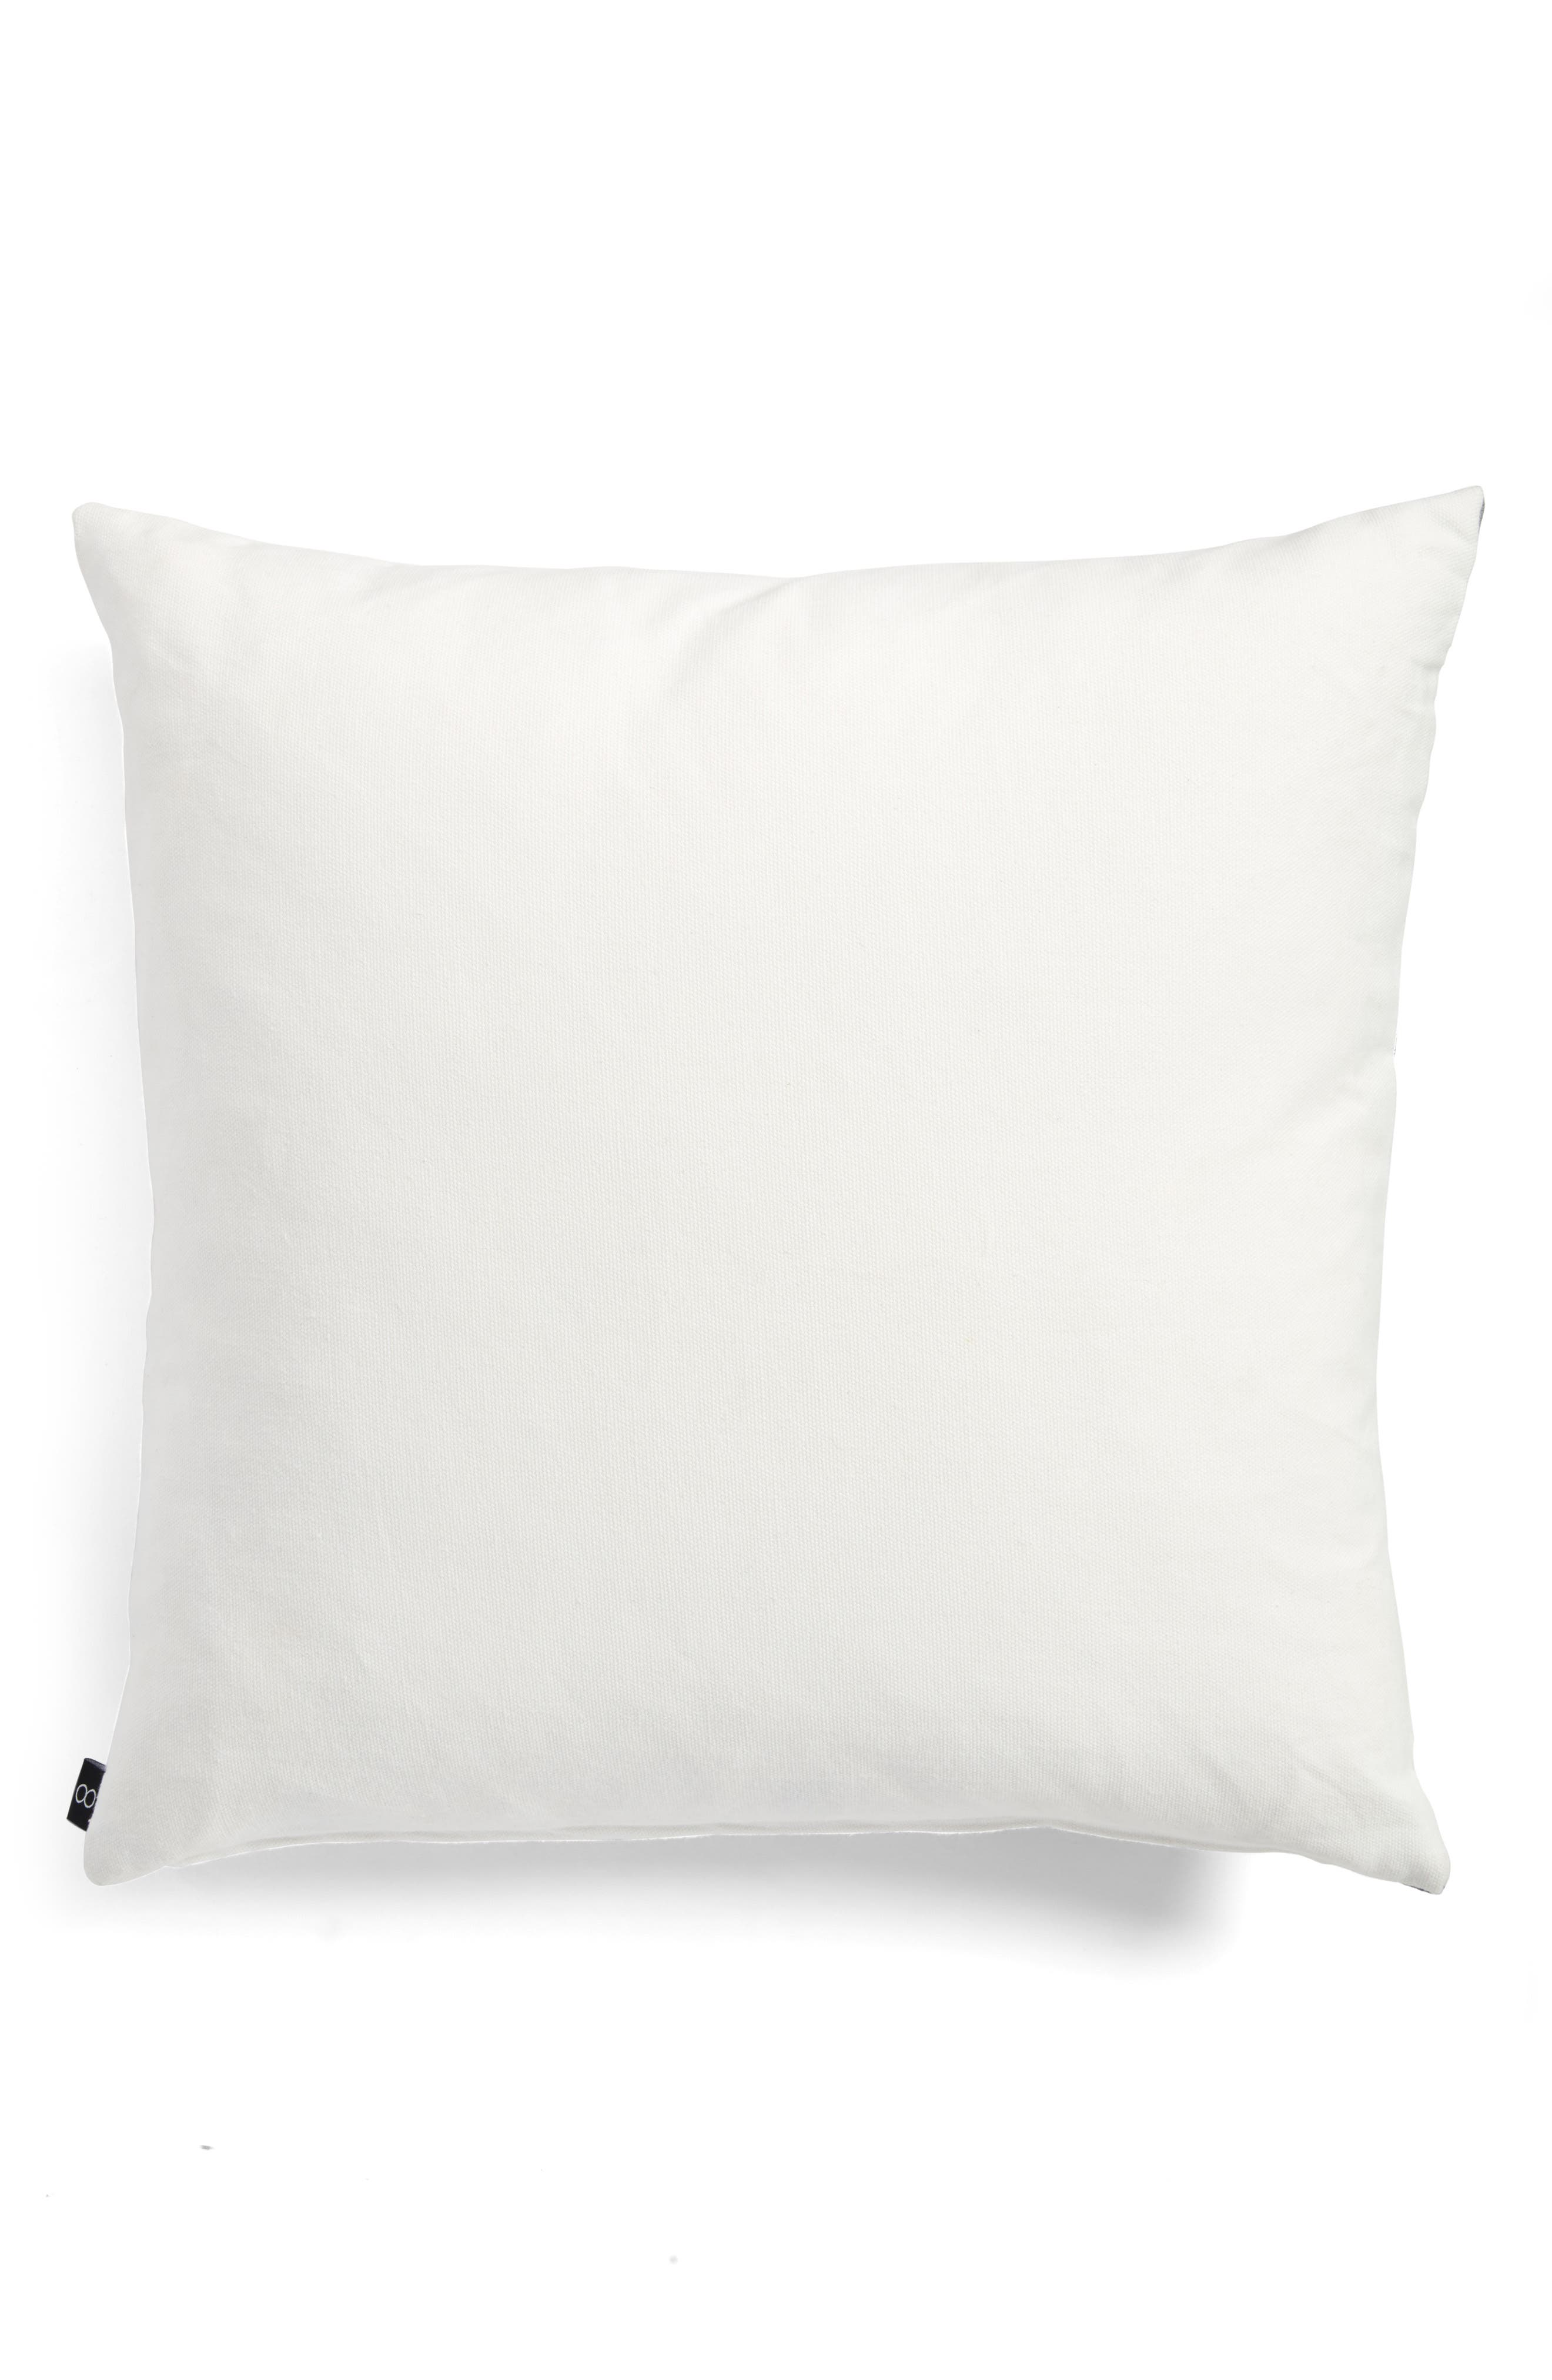 Love at First Sight Accent Pillow,                             Alternate thumbnail 2, color,                             020